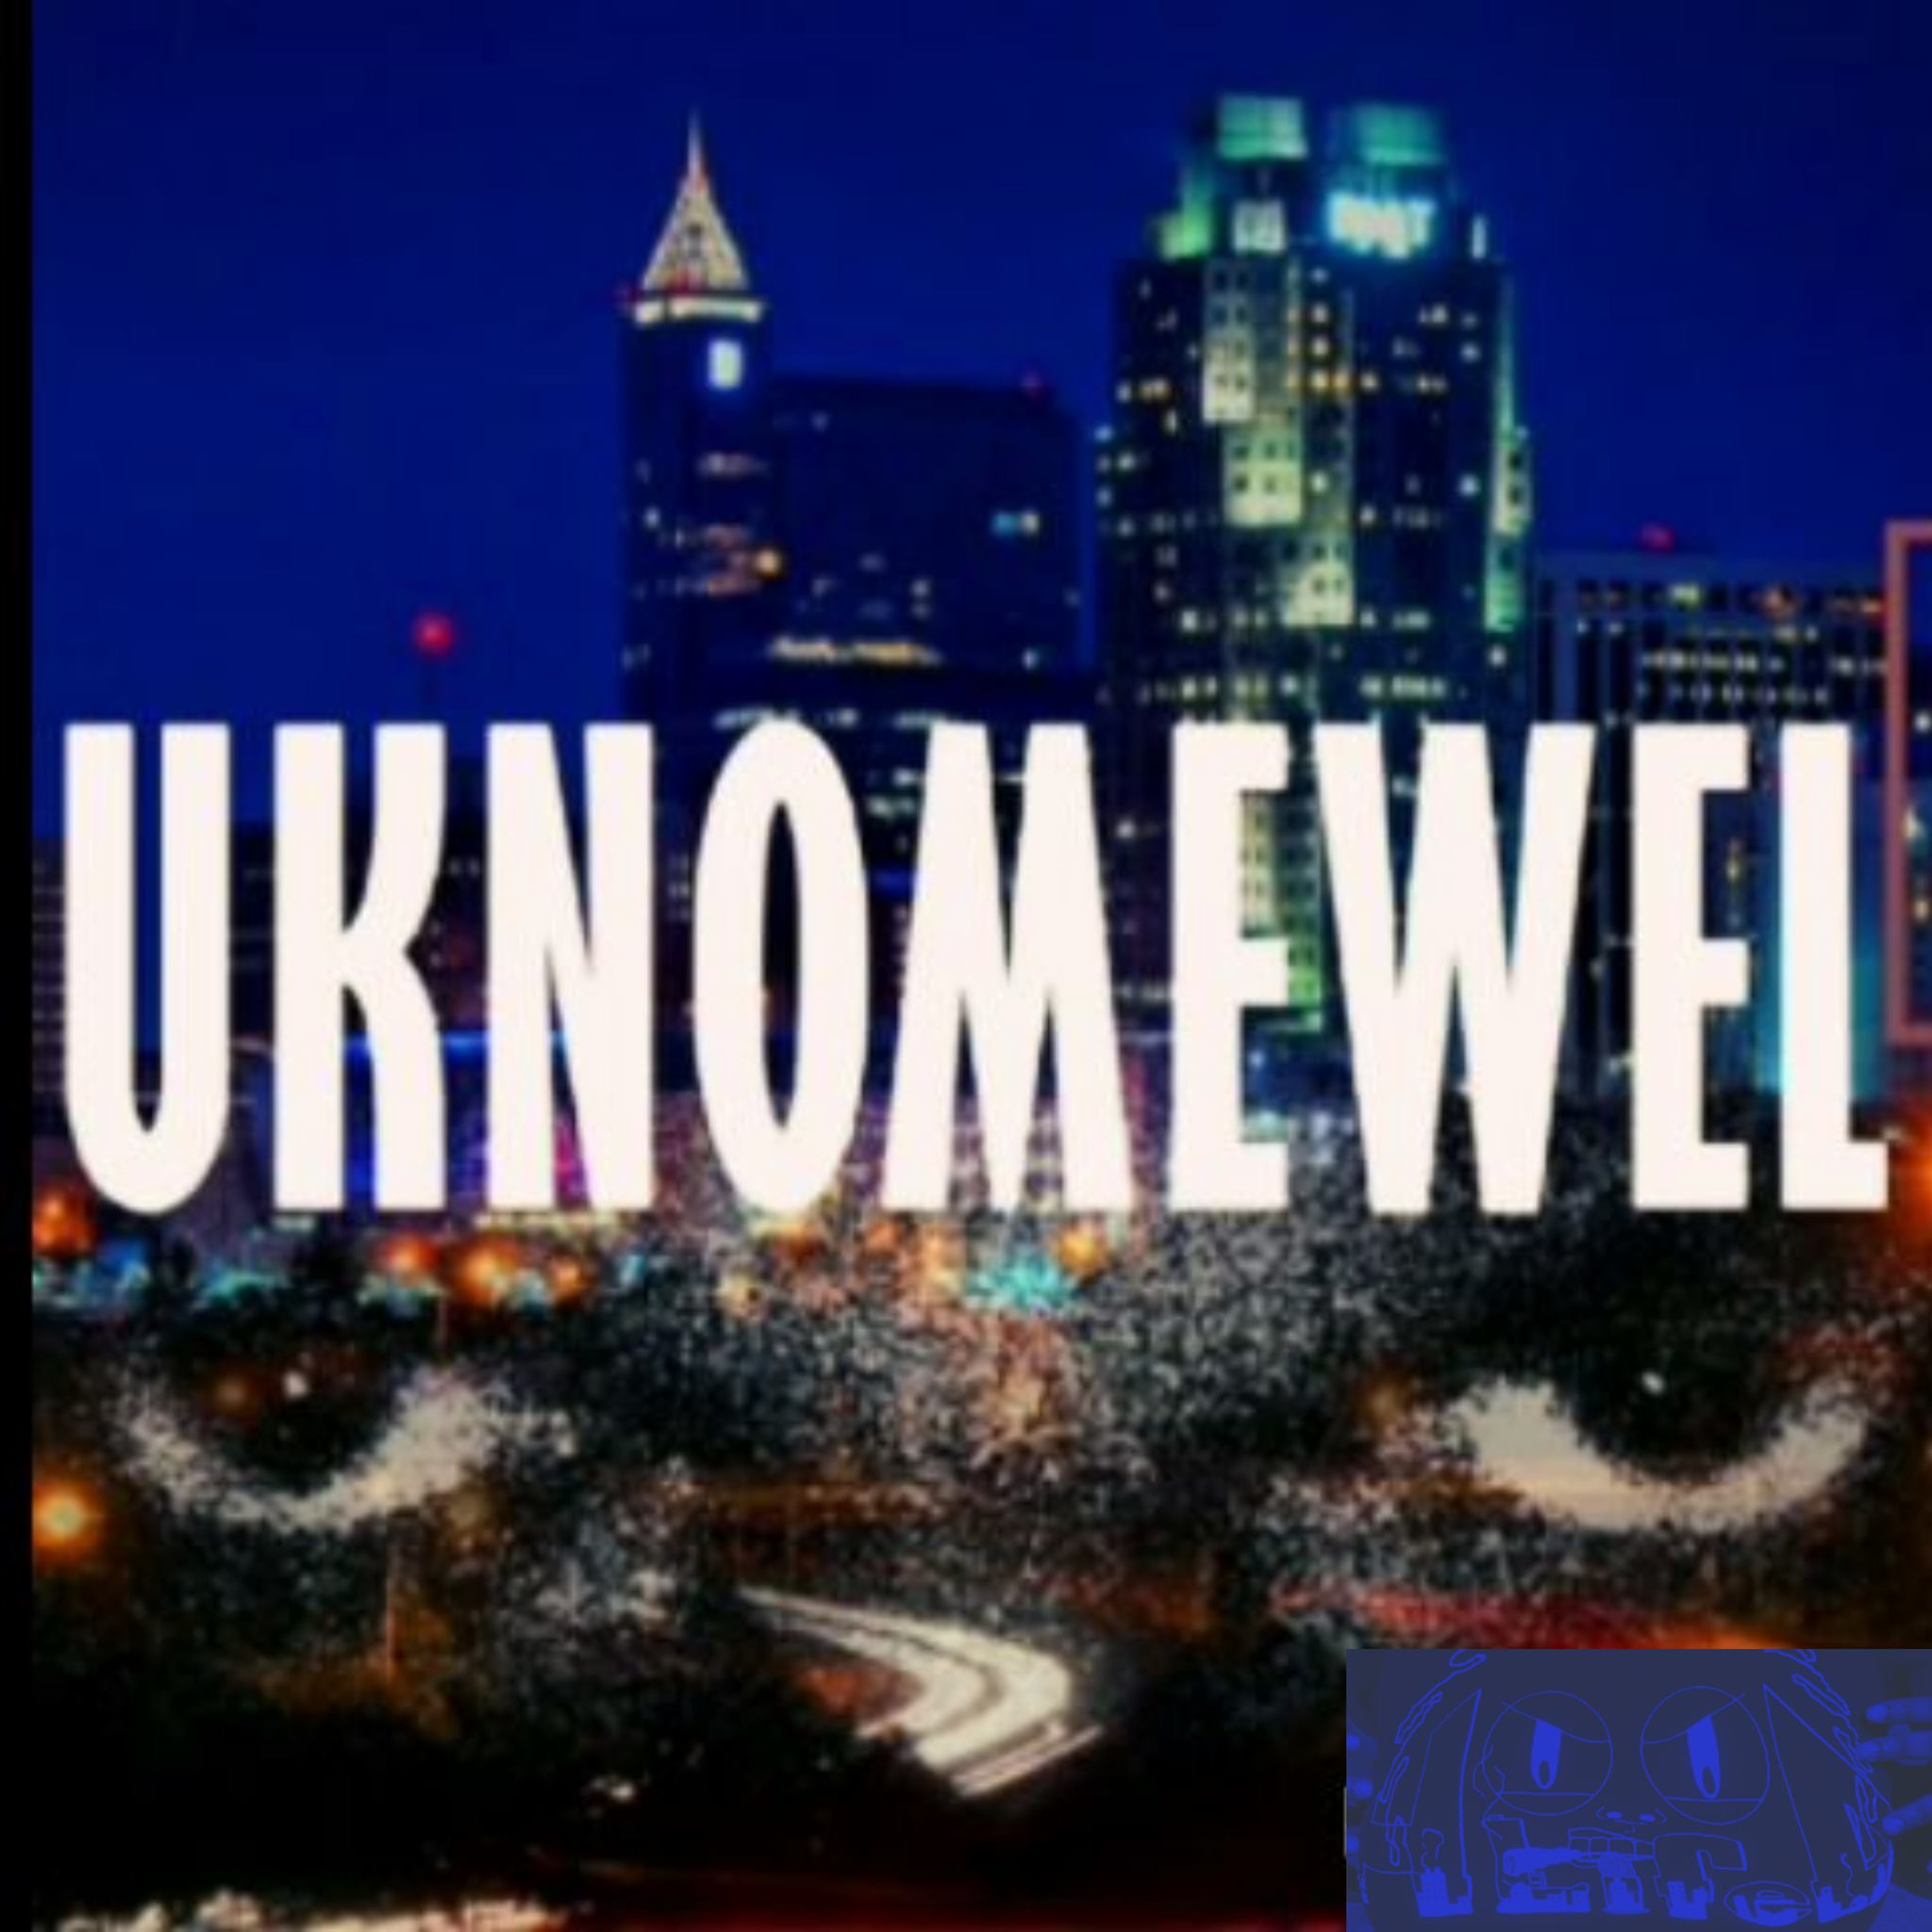 Uknomewel LilKev Loksmif Rap Music Video for 'Neon Diamonds' ft 2B